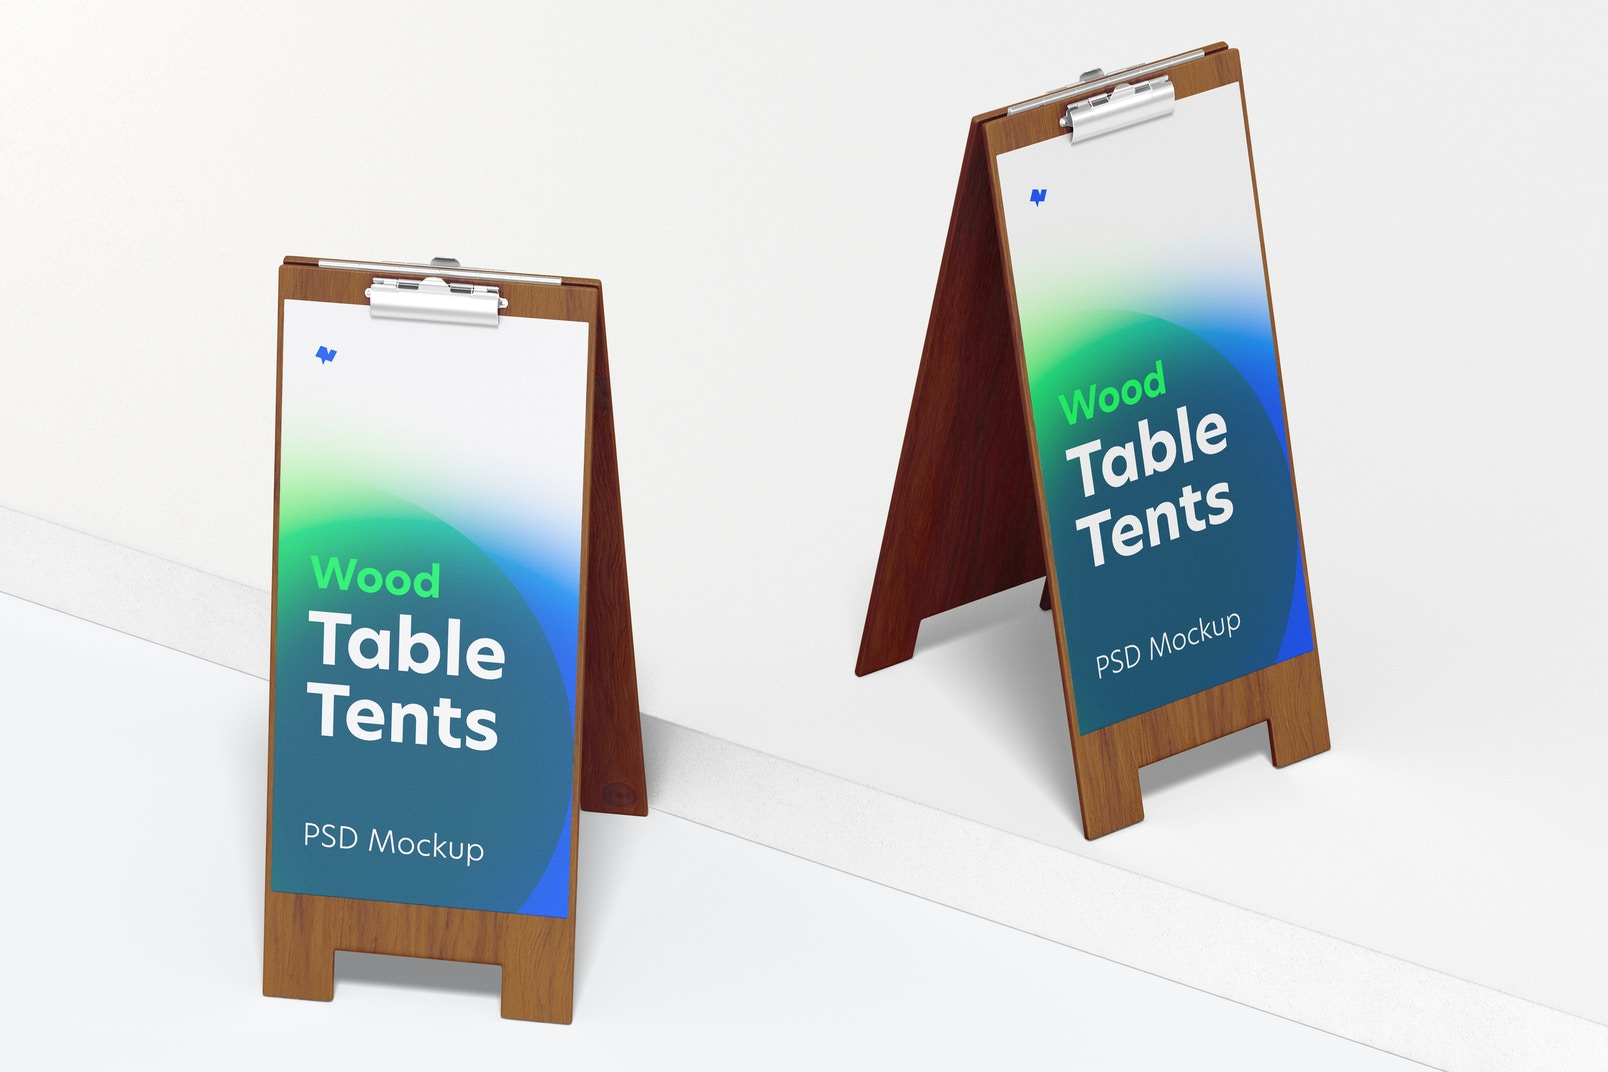 Wood Table Tents with Clip Mockup, Front View